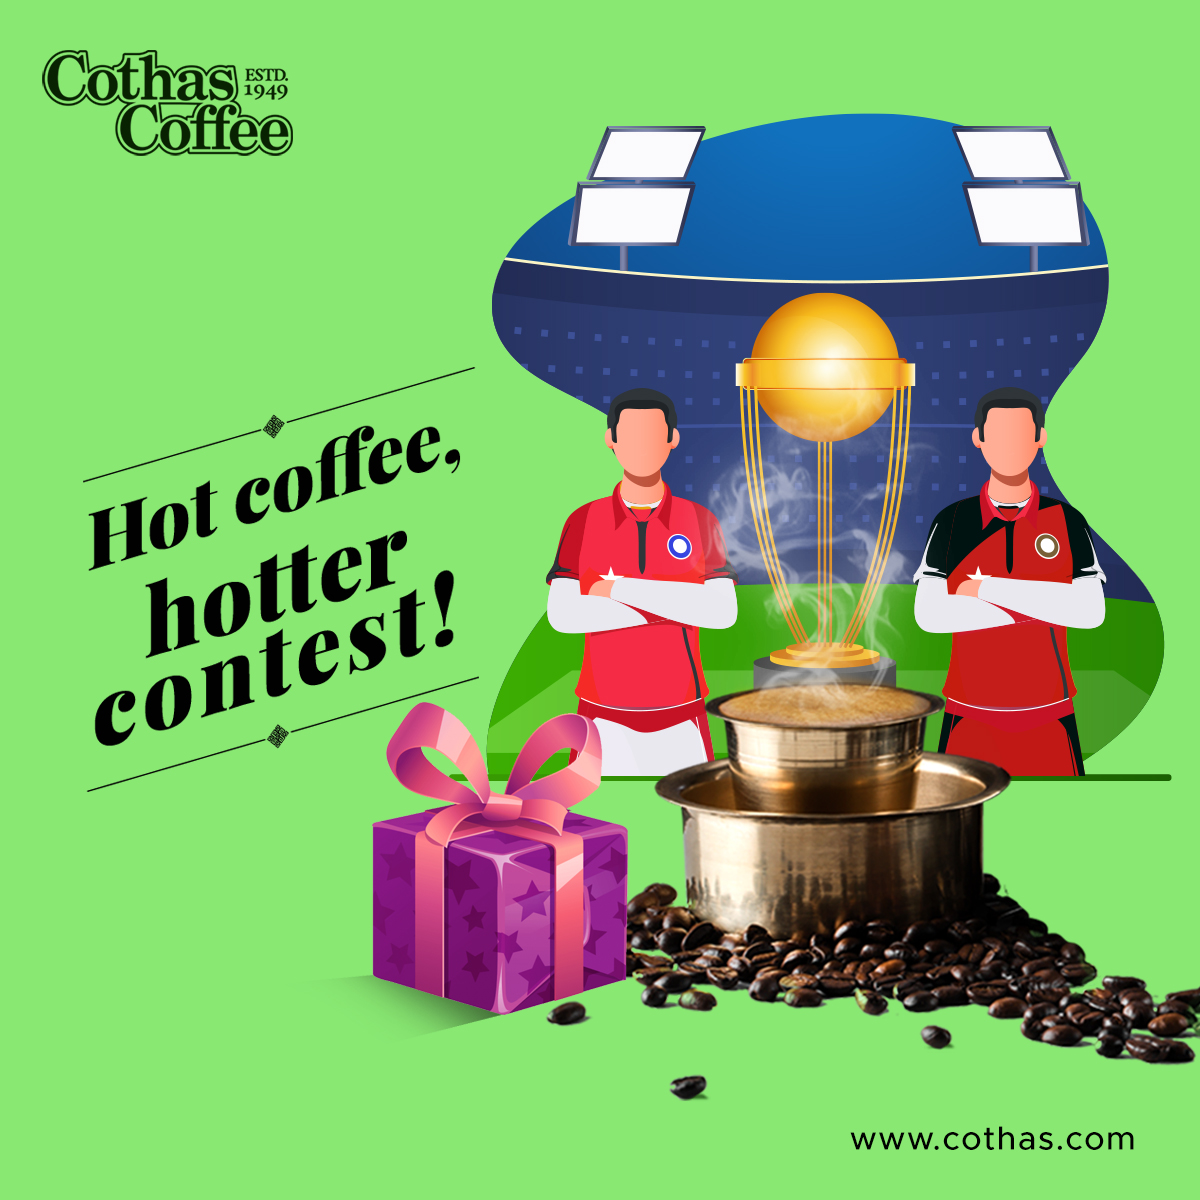 When two giants fight it out for victory, which player do you think hits the maximum fours today? Cothas gifts for the right guess!(Follow, Like & comment to Participate)  #Cothas #CothasCoffee #TheRealTasteOfCoffee #IPL2020 #KXIP #RCB #Dream11IPL #IPLContests #ESCN #KXIPvRCB https://t.co/lhrbzvIeQX